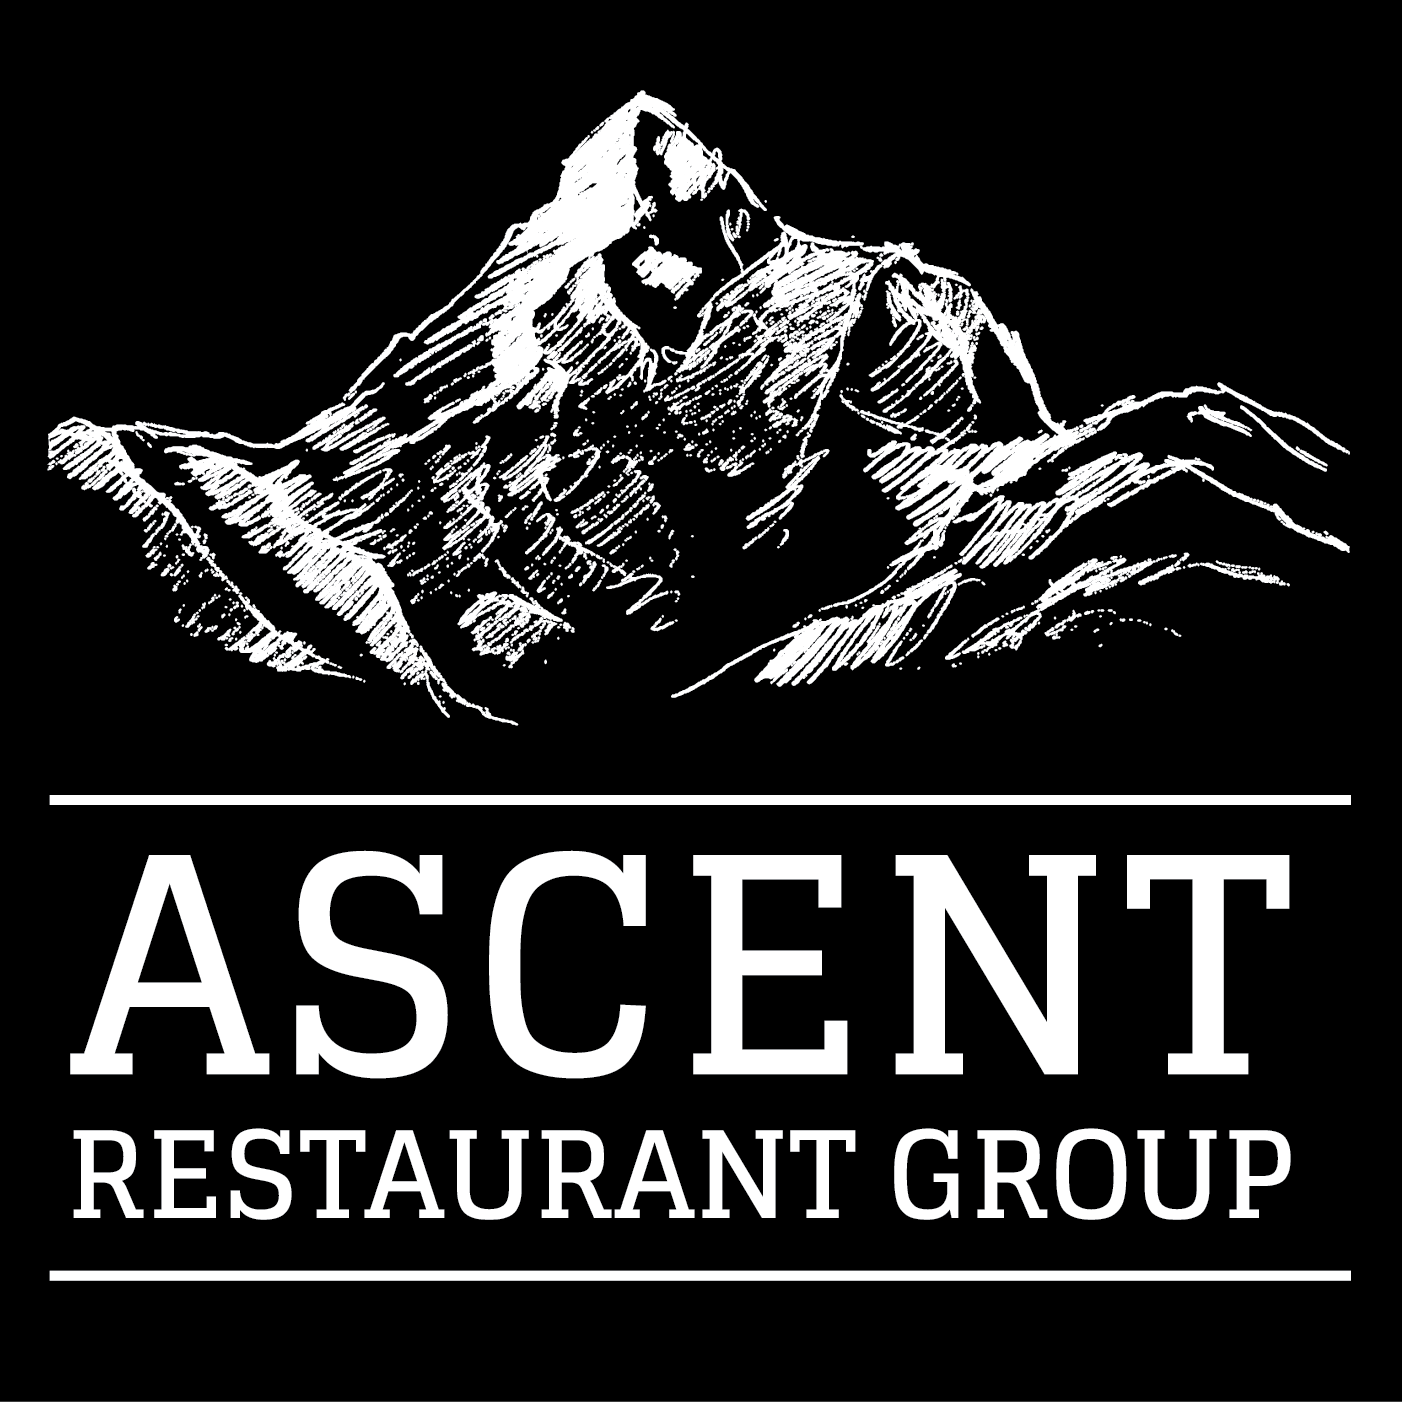 Ascent Restaurant Group